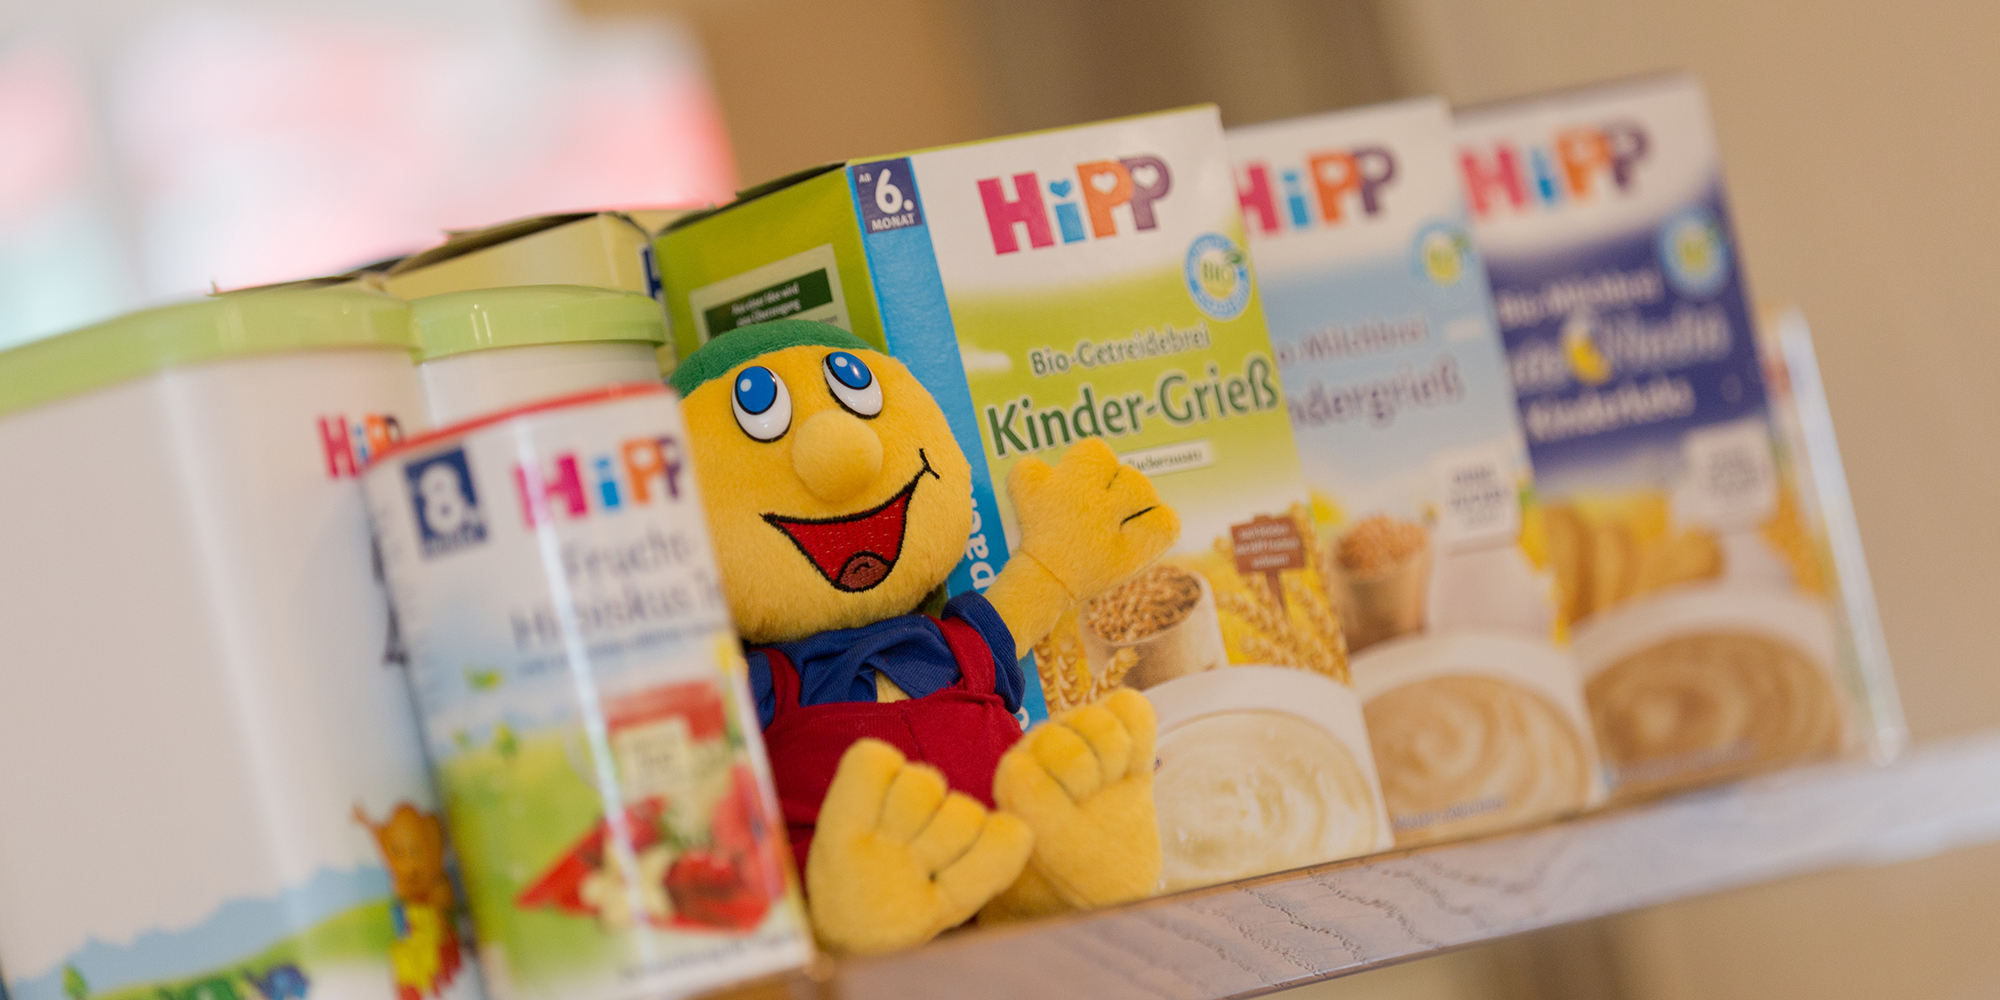 Hipp - Smiley - Kinderhotel